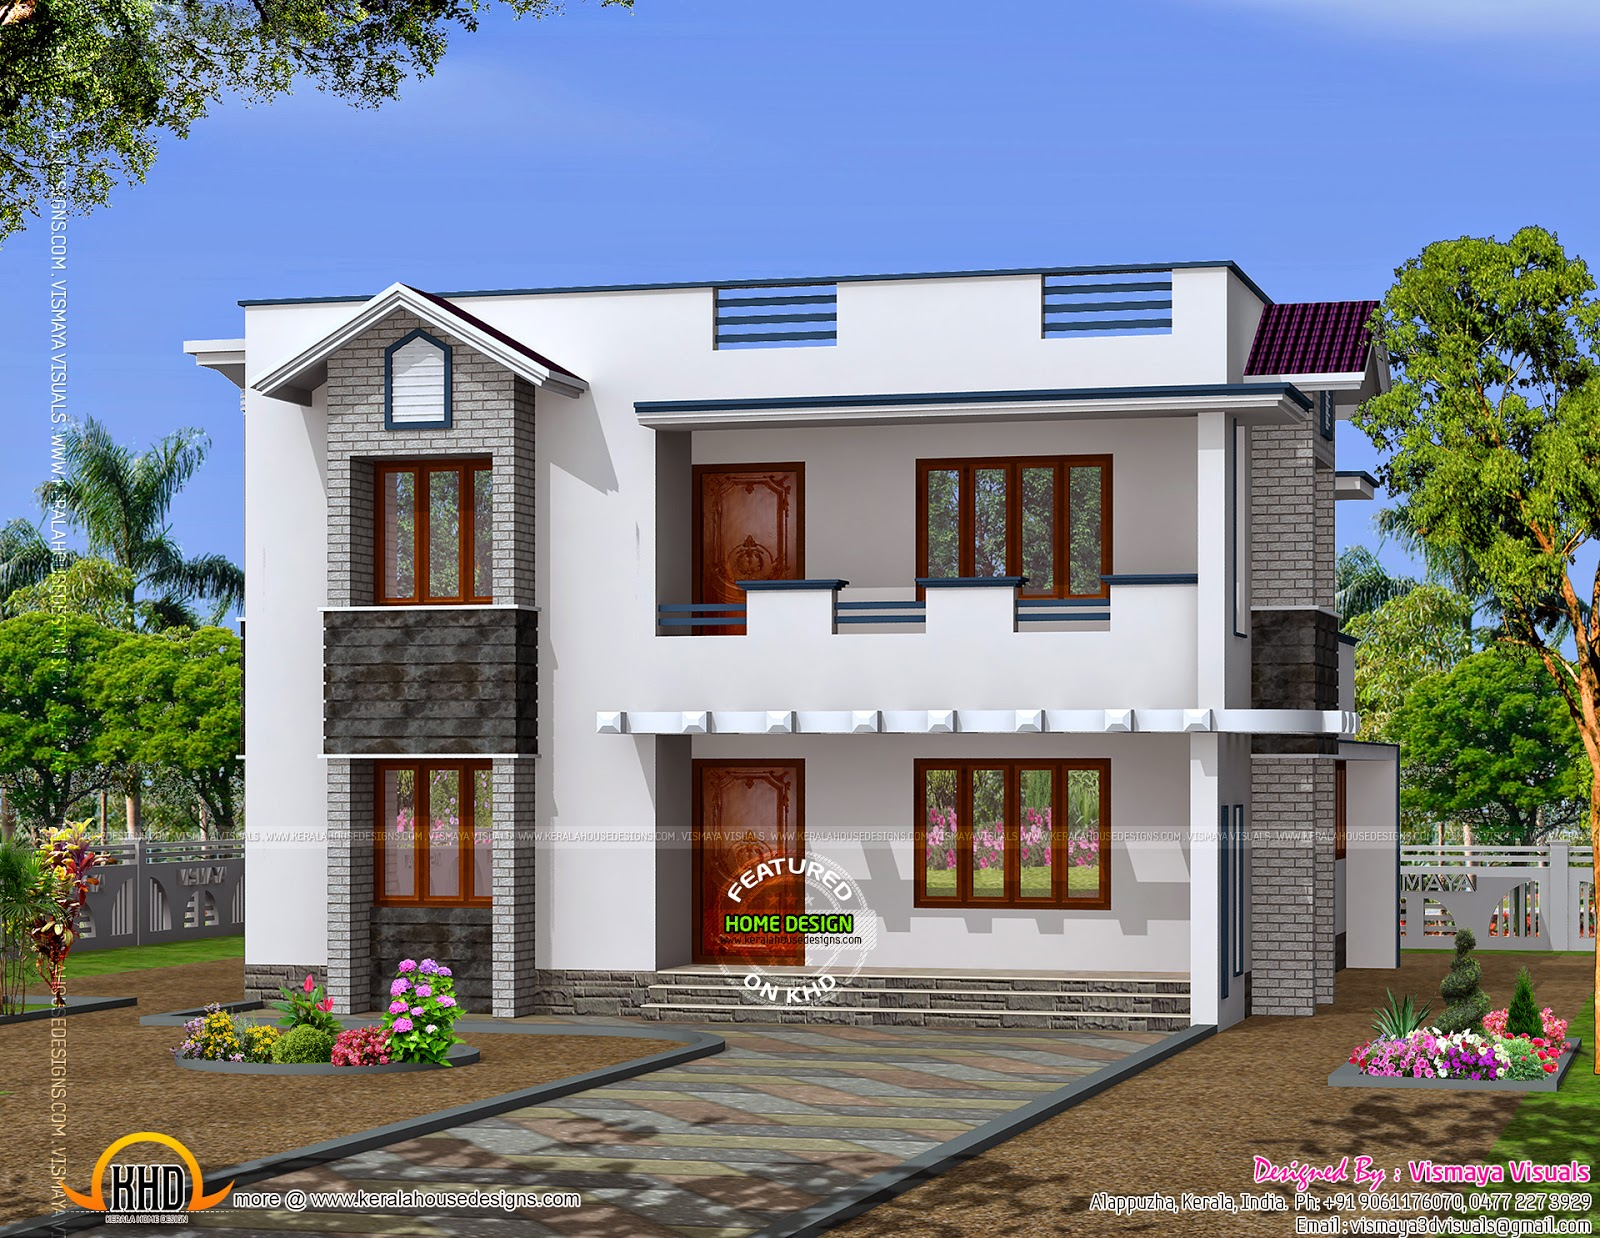 Simple design home kerala home design and floor plans for Basic design house plans